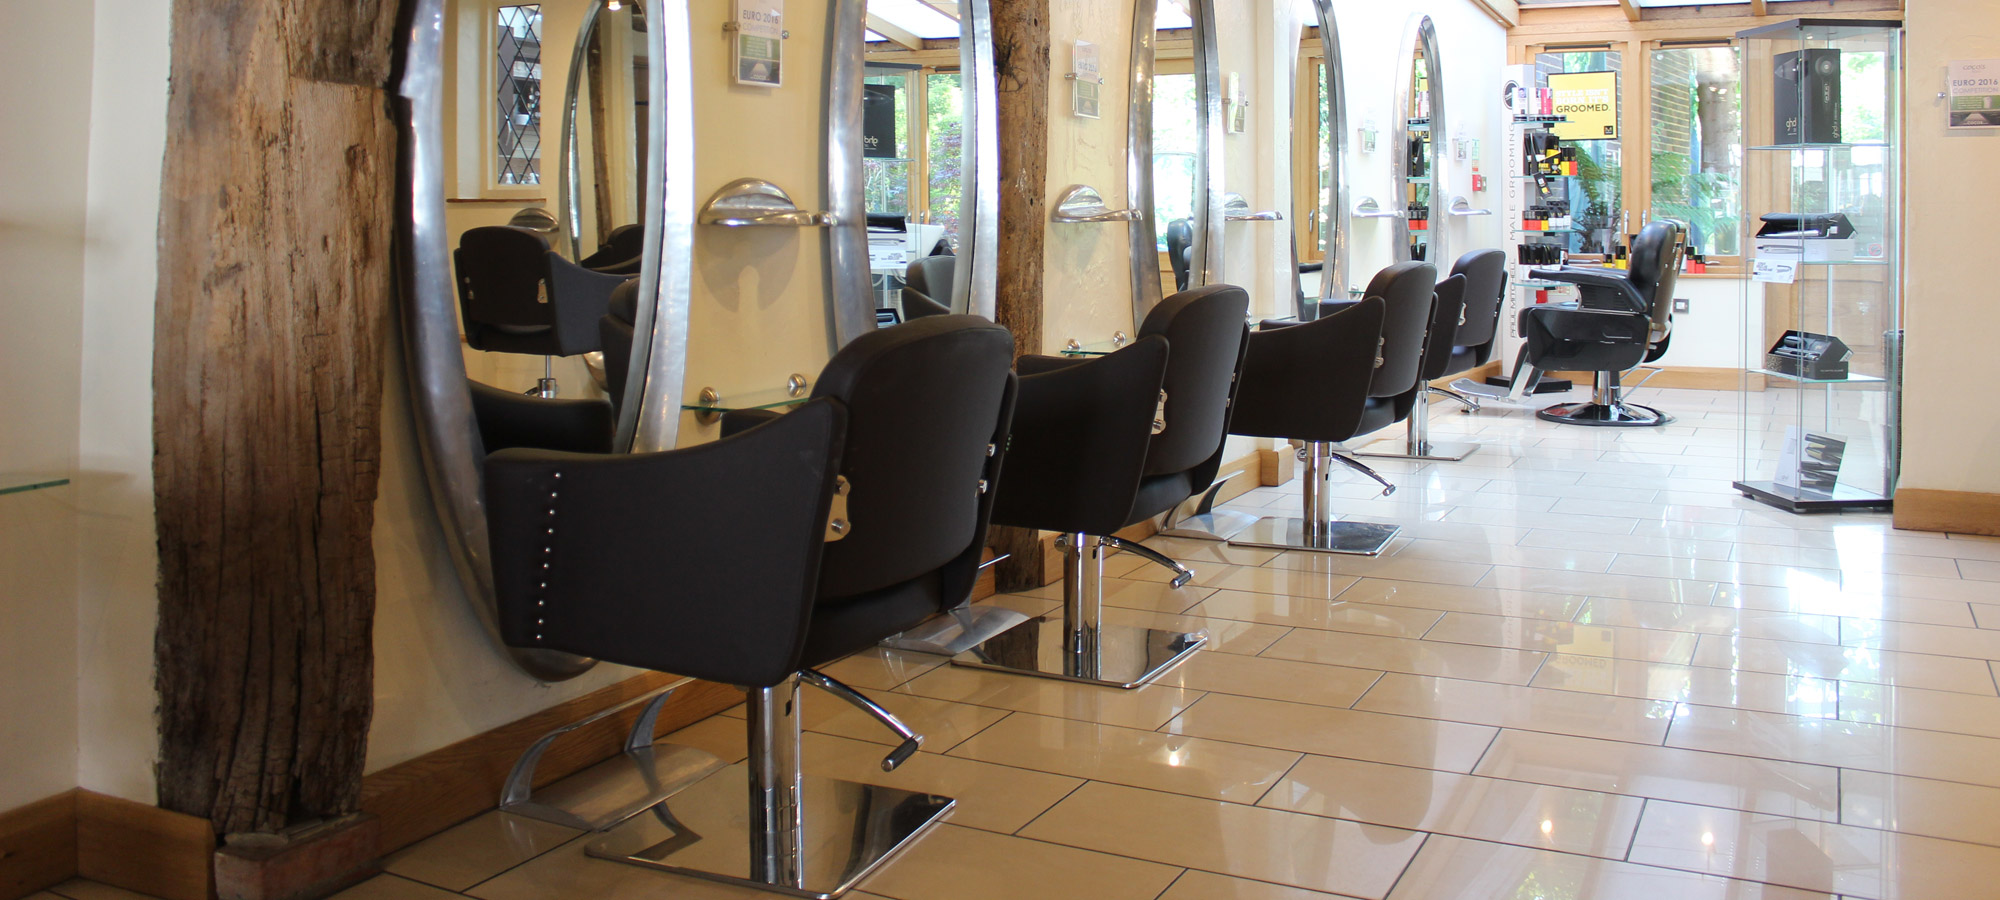 Salon Hair Billingshurst Hair Salon And Hairdressers